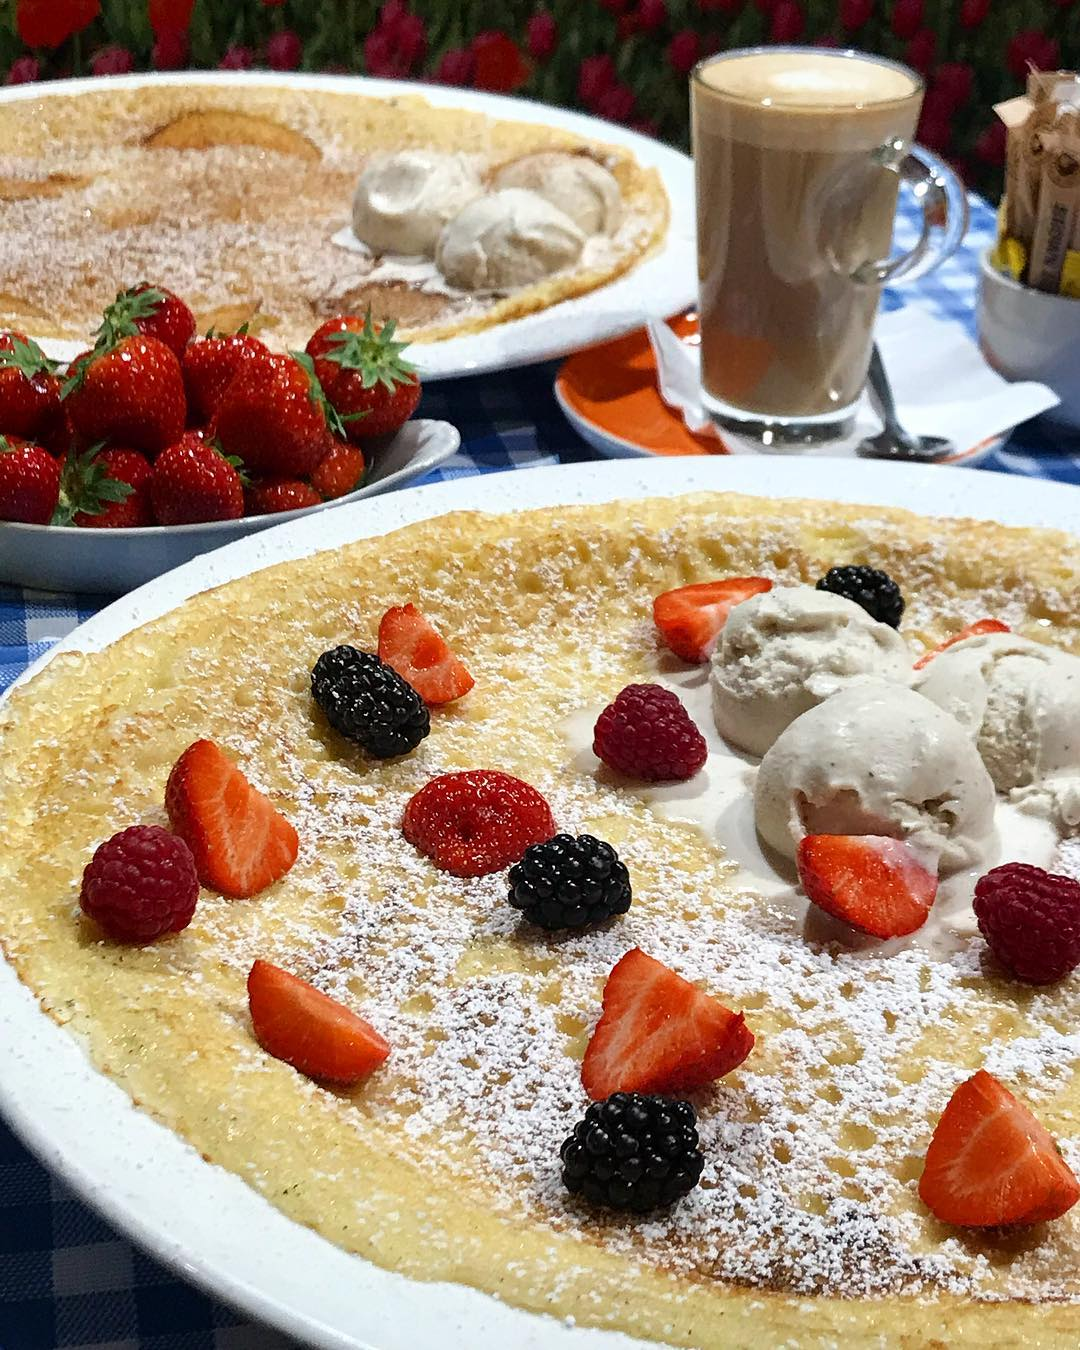 best gluten free pancakes in london, gluten free pancakes in london, gluten free pancakes london, gluten-free pancakes london, london's best gluten free pancakes